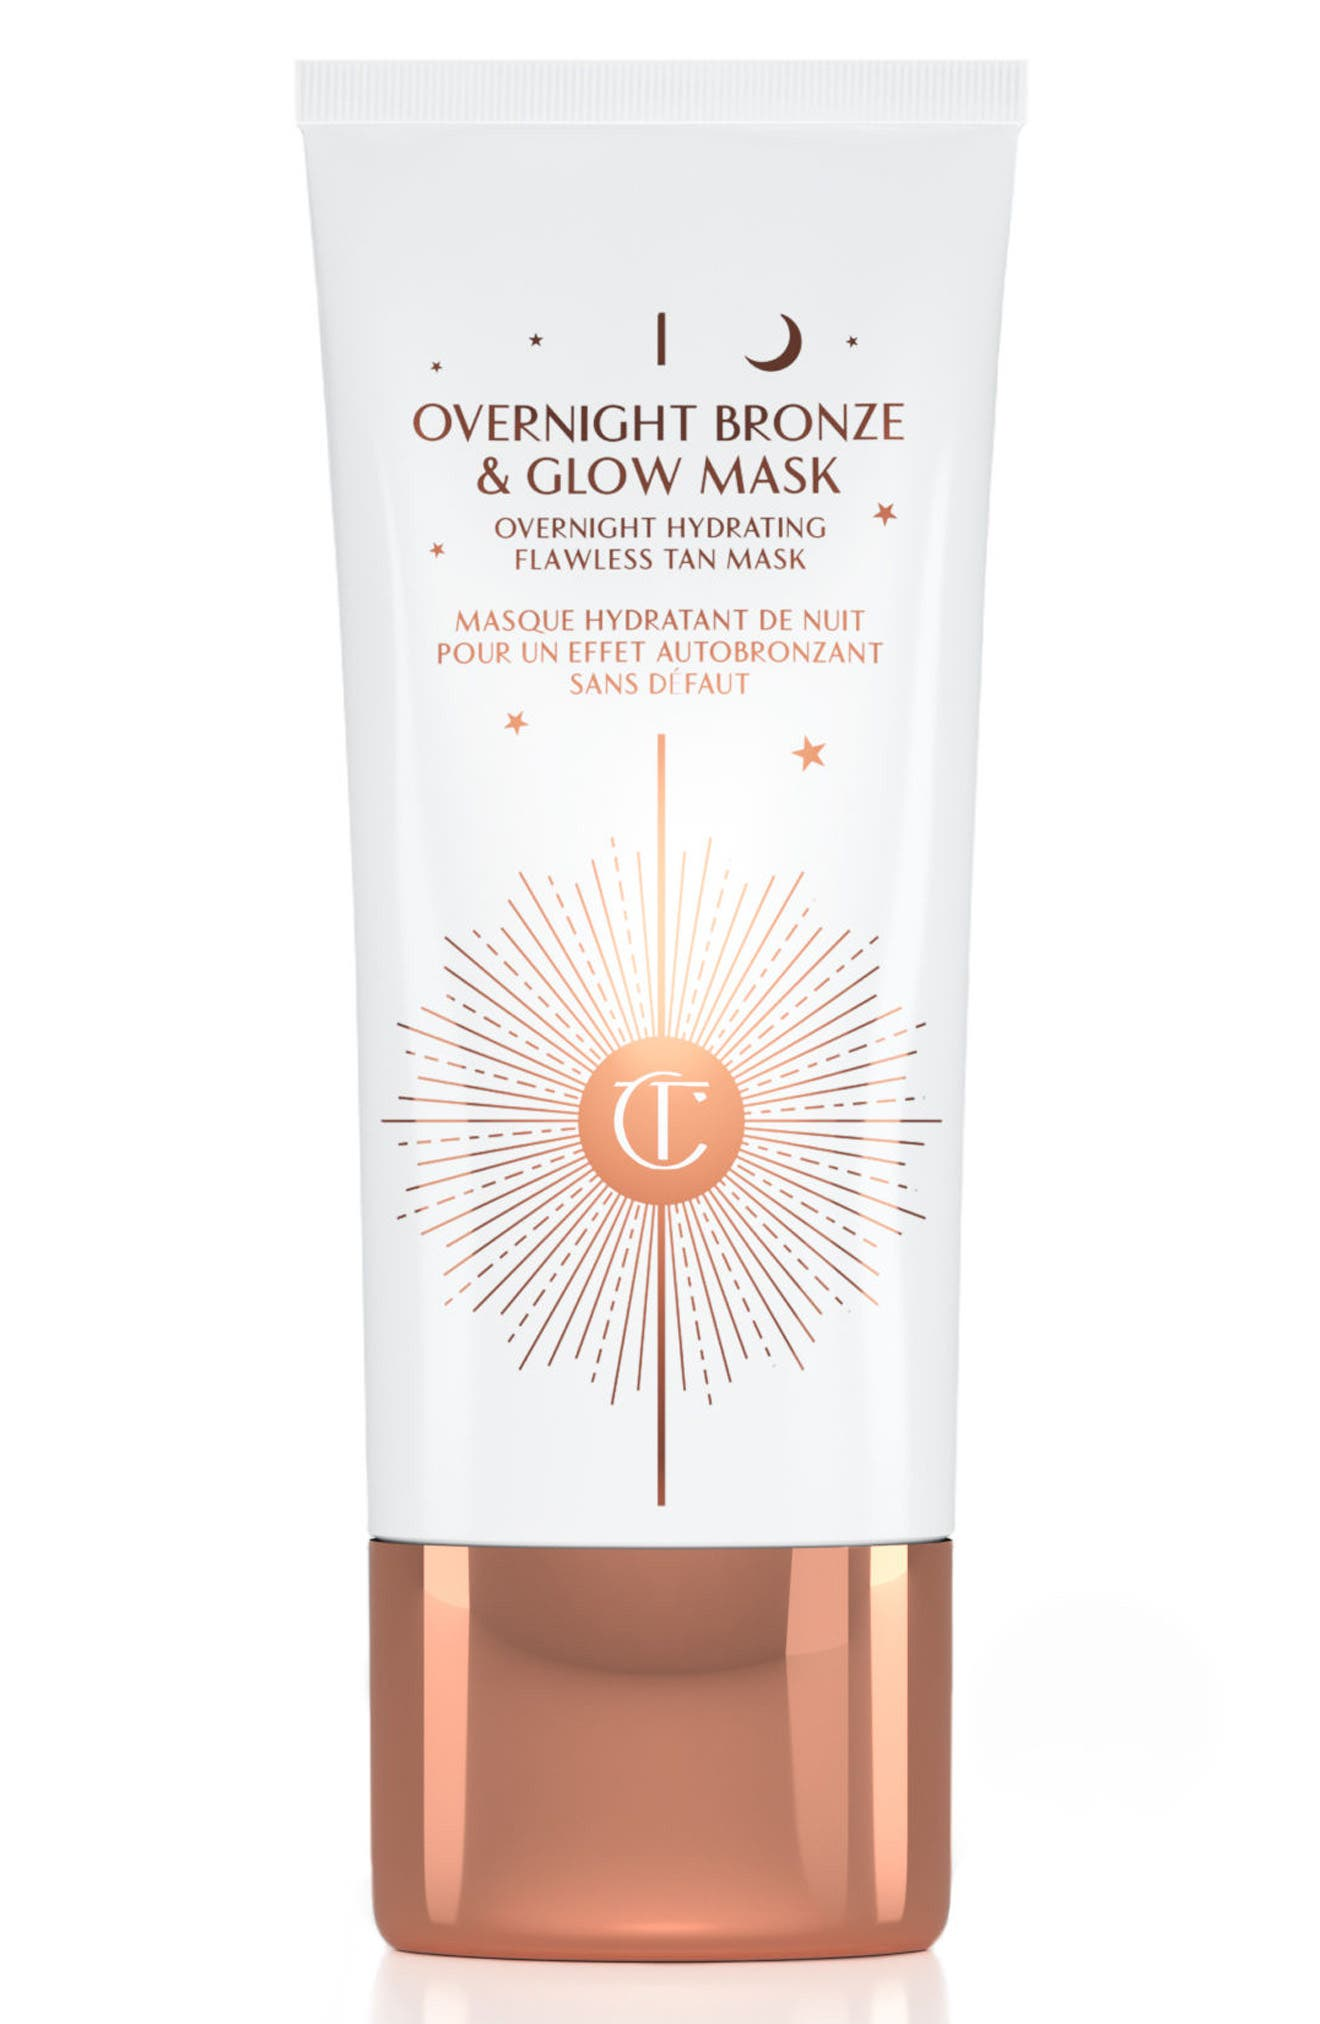 CHARLOTTE TILBURY Overnight Bronze & Glow Mask, Main, color, NO COLOR